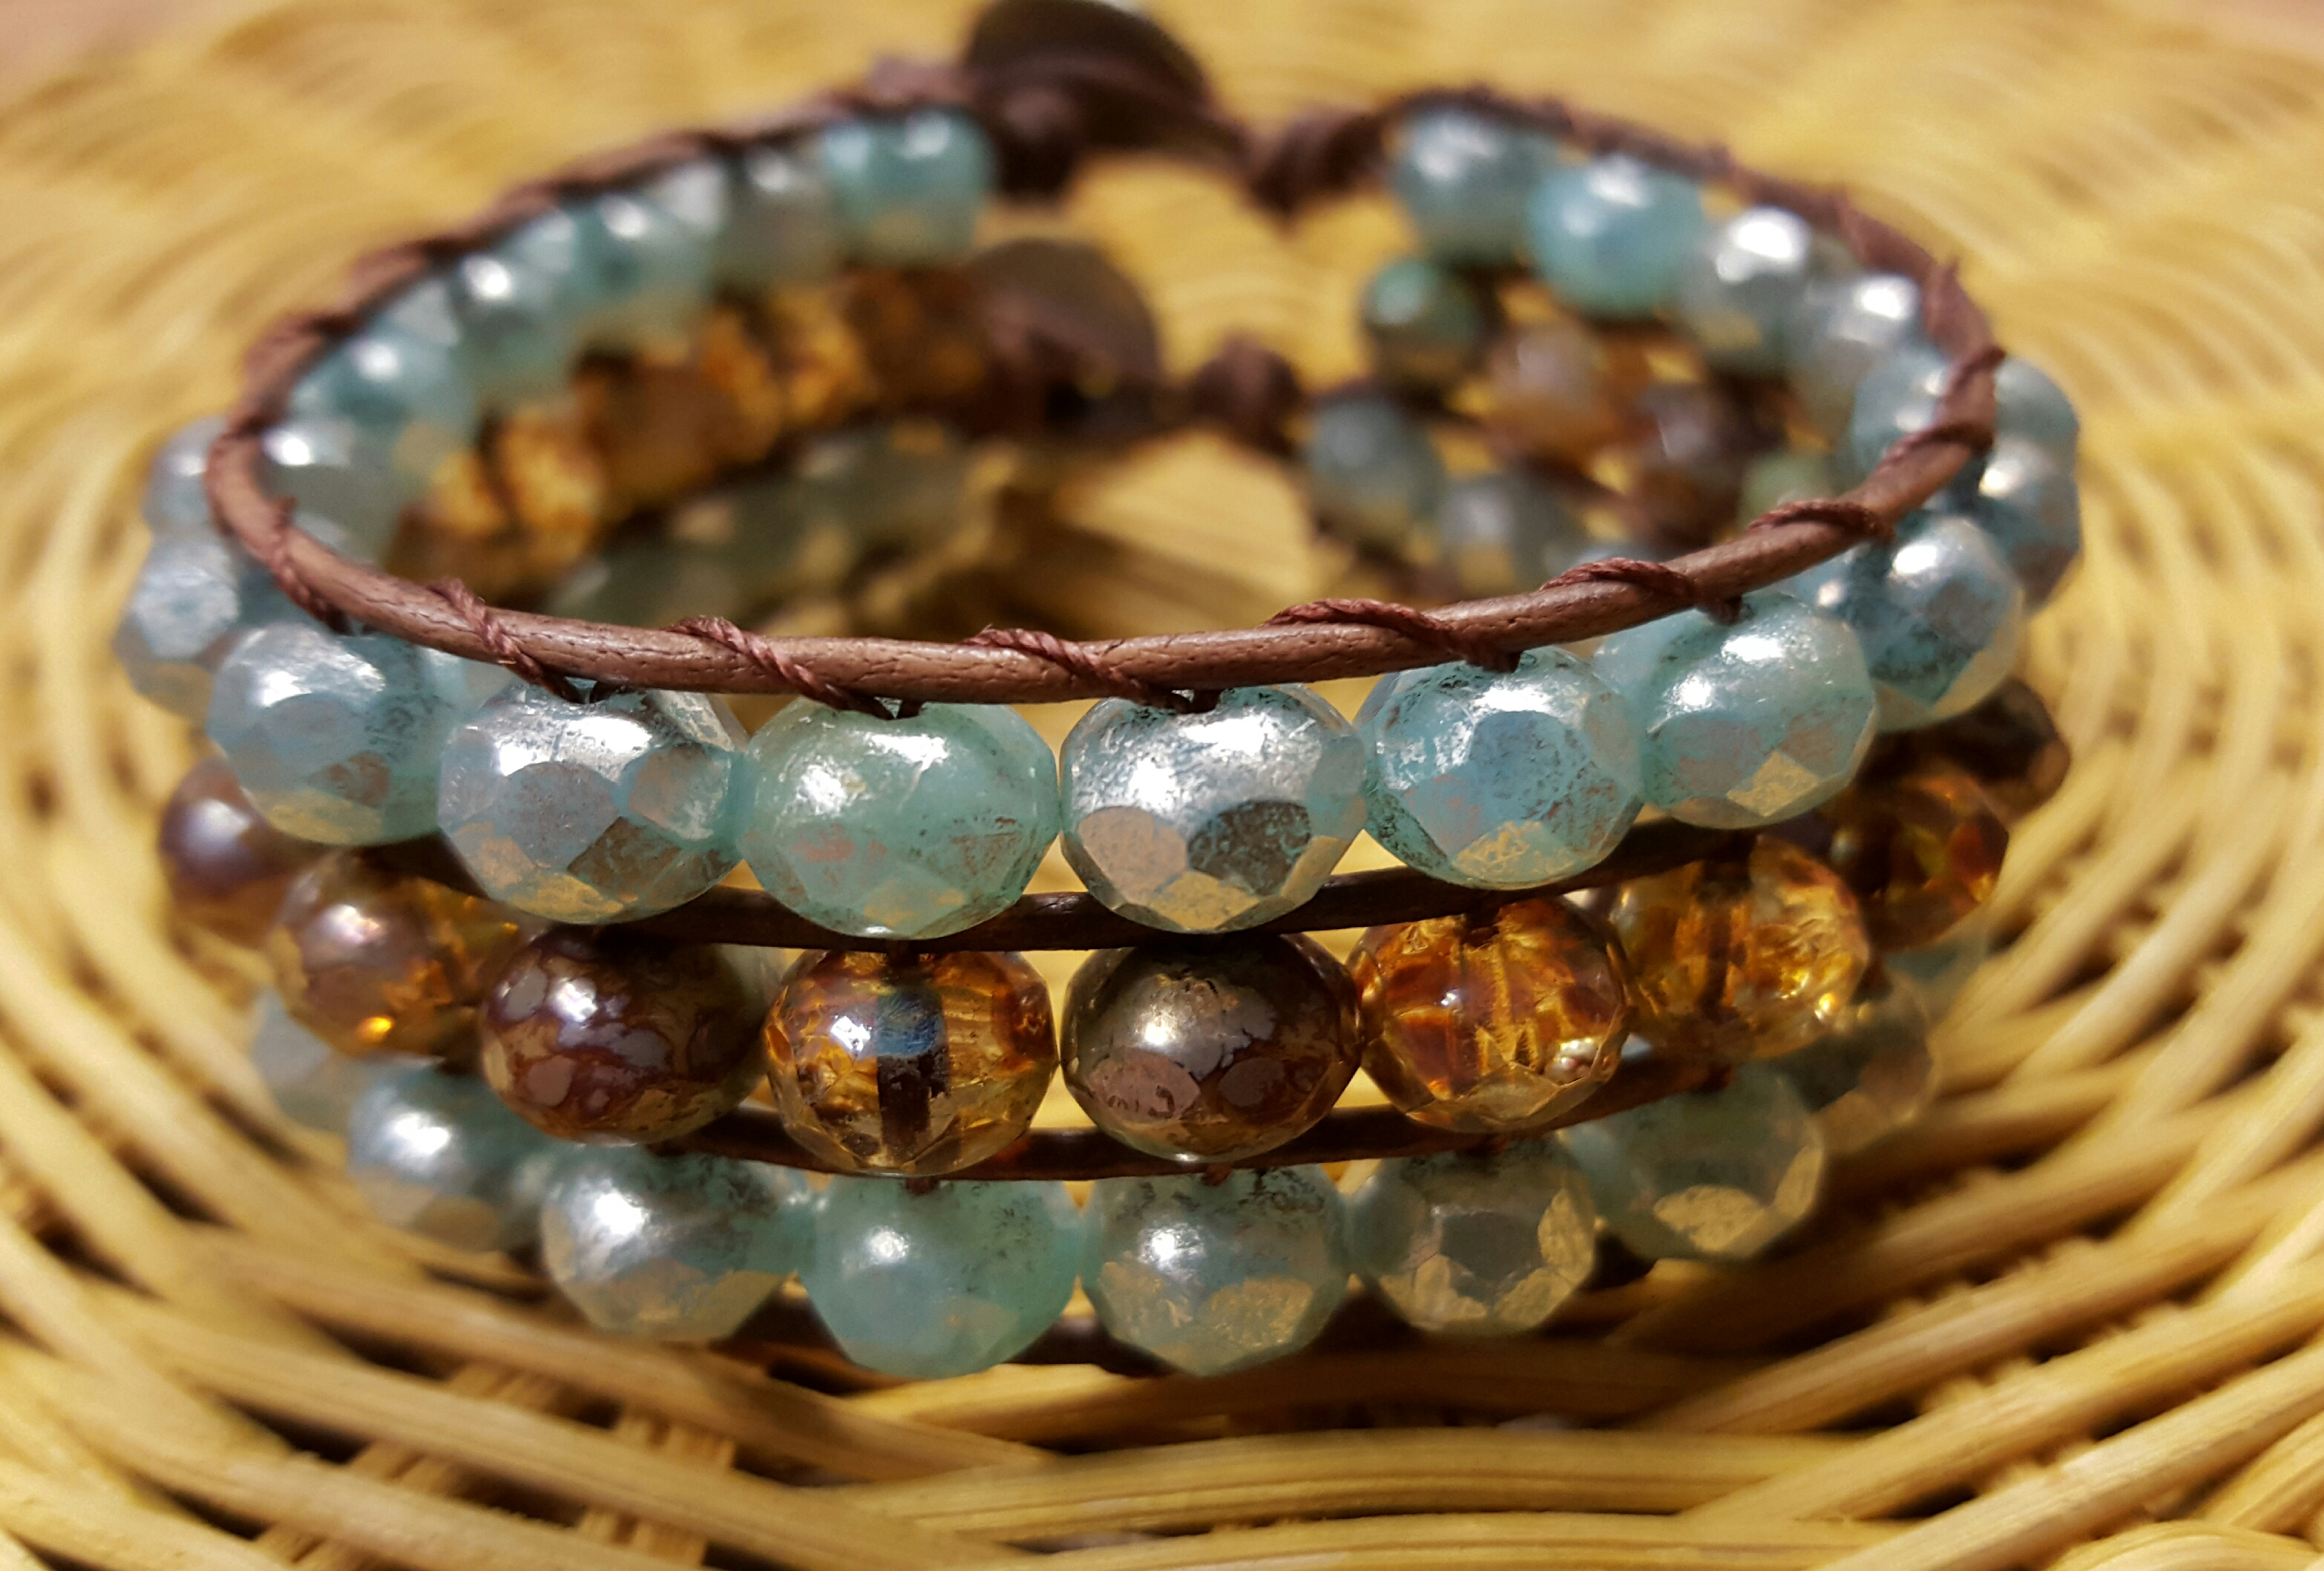 Bangles & Beads | 3322 W Cary St RVA | 804 355-6118